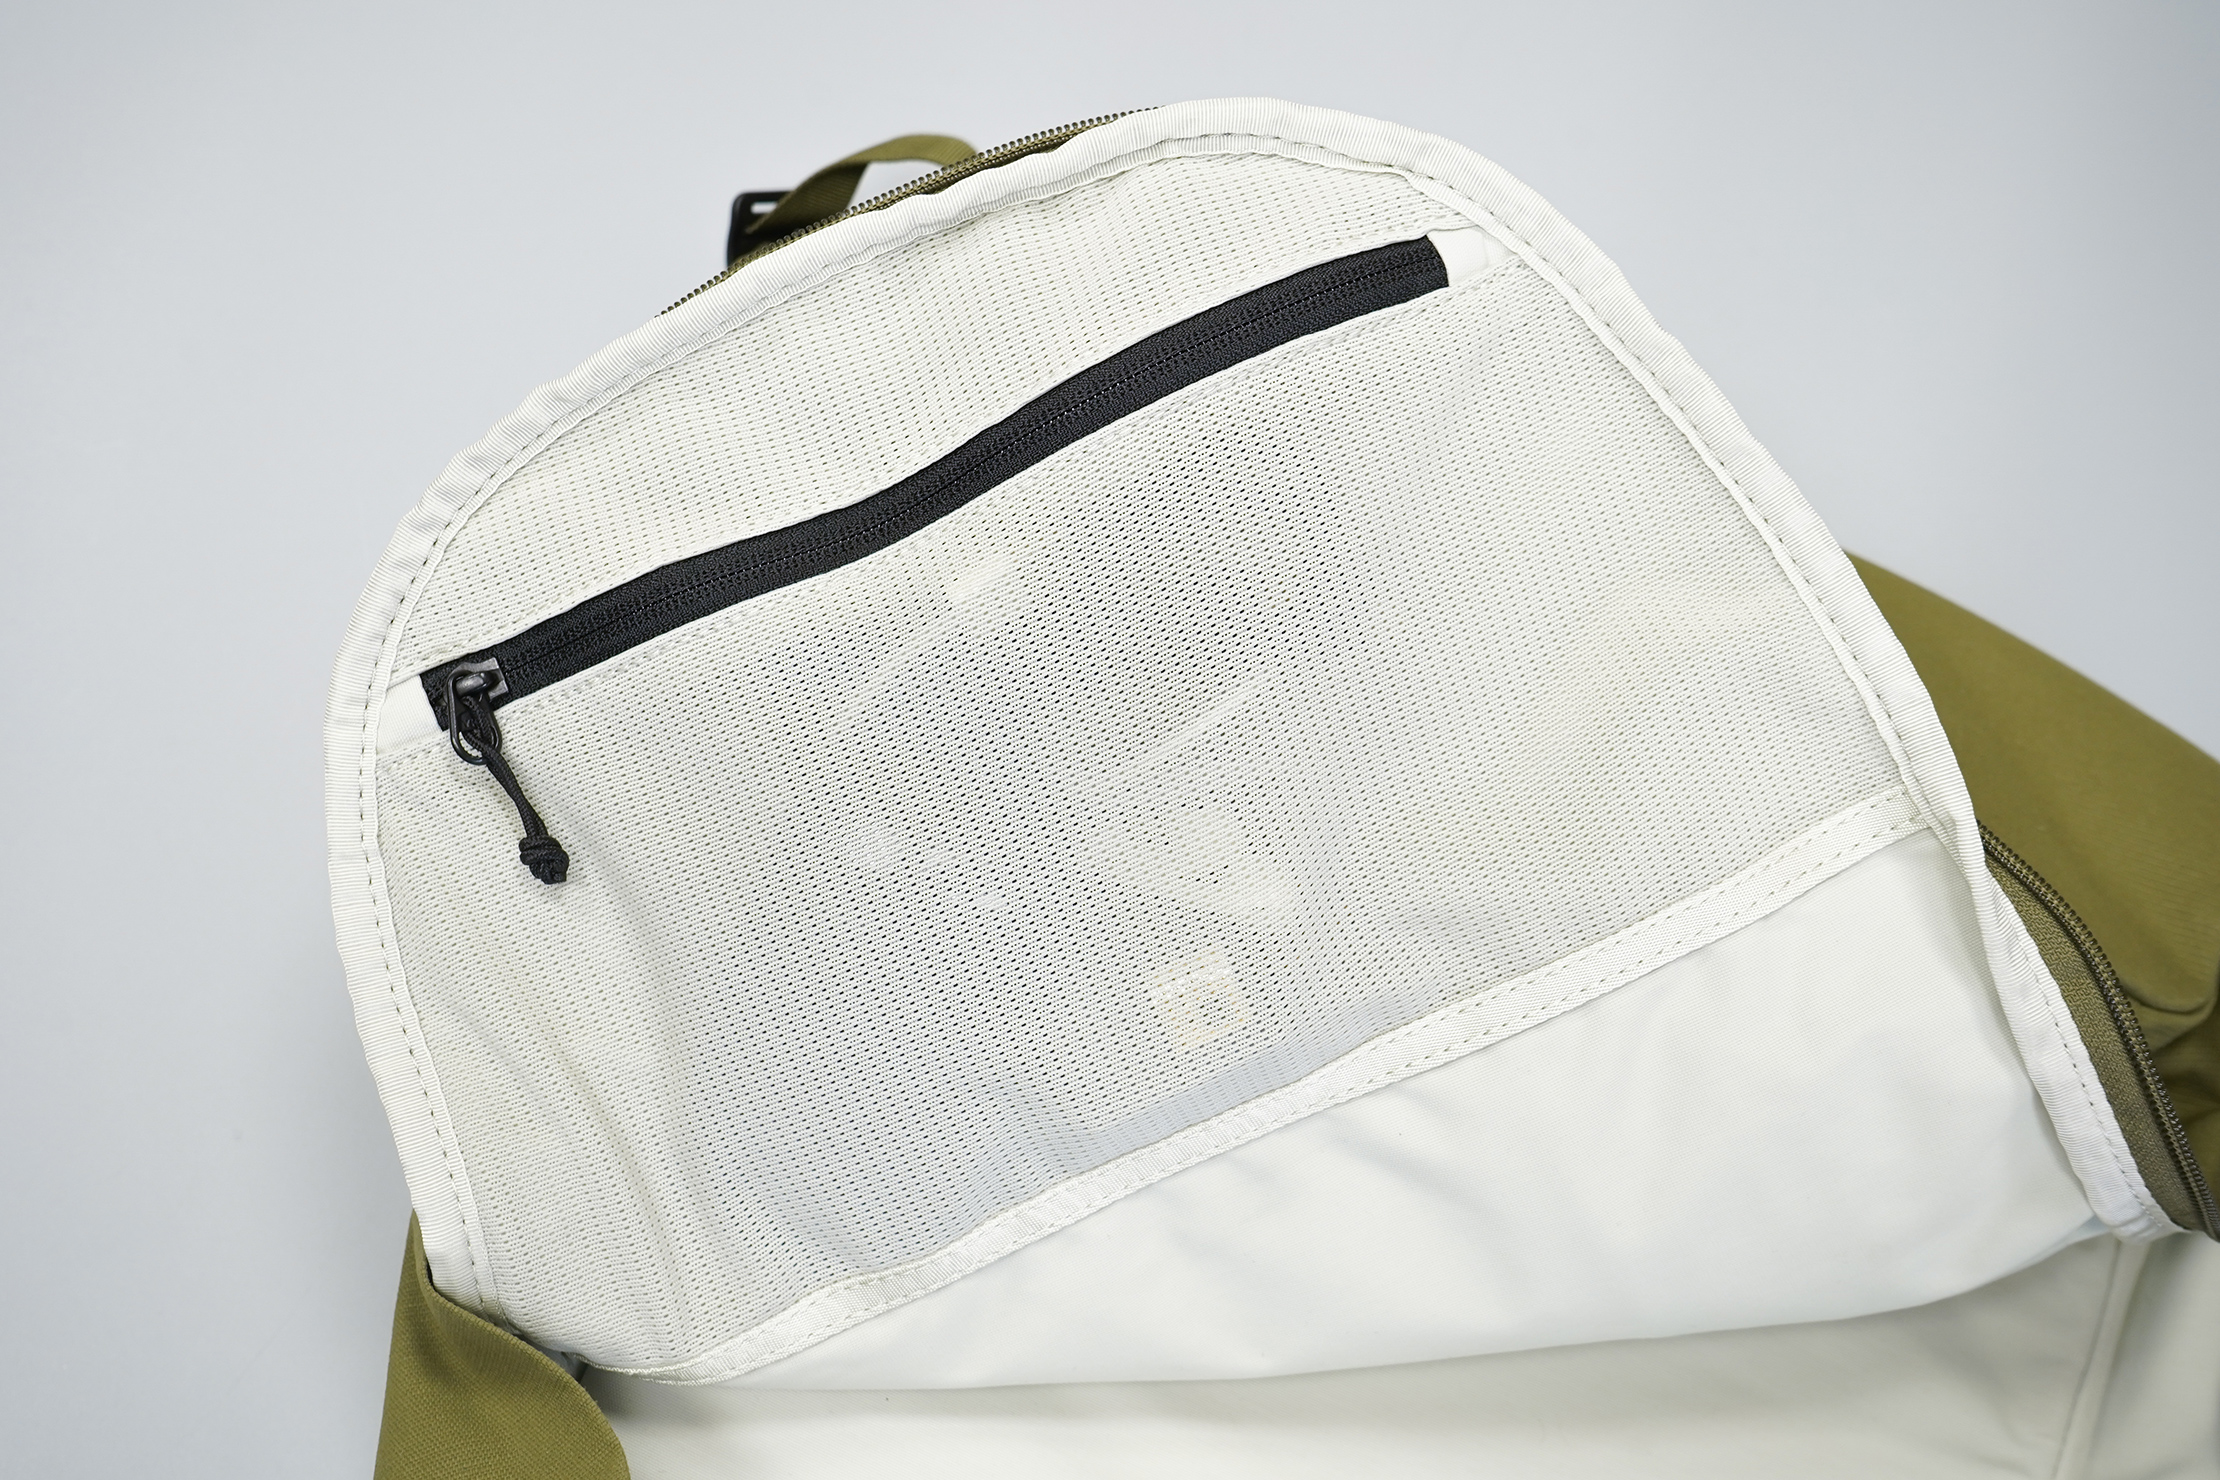 Moment MTW Backpack | Main compartment